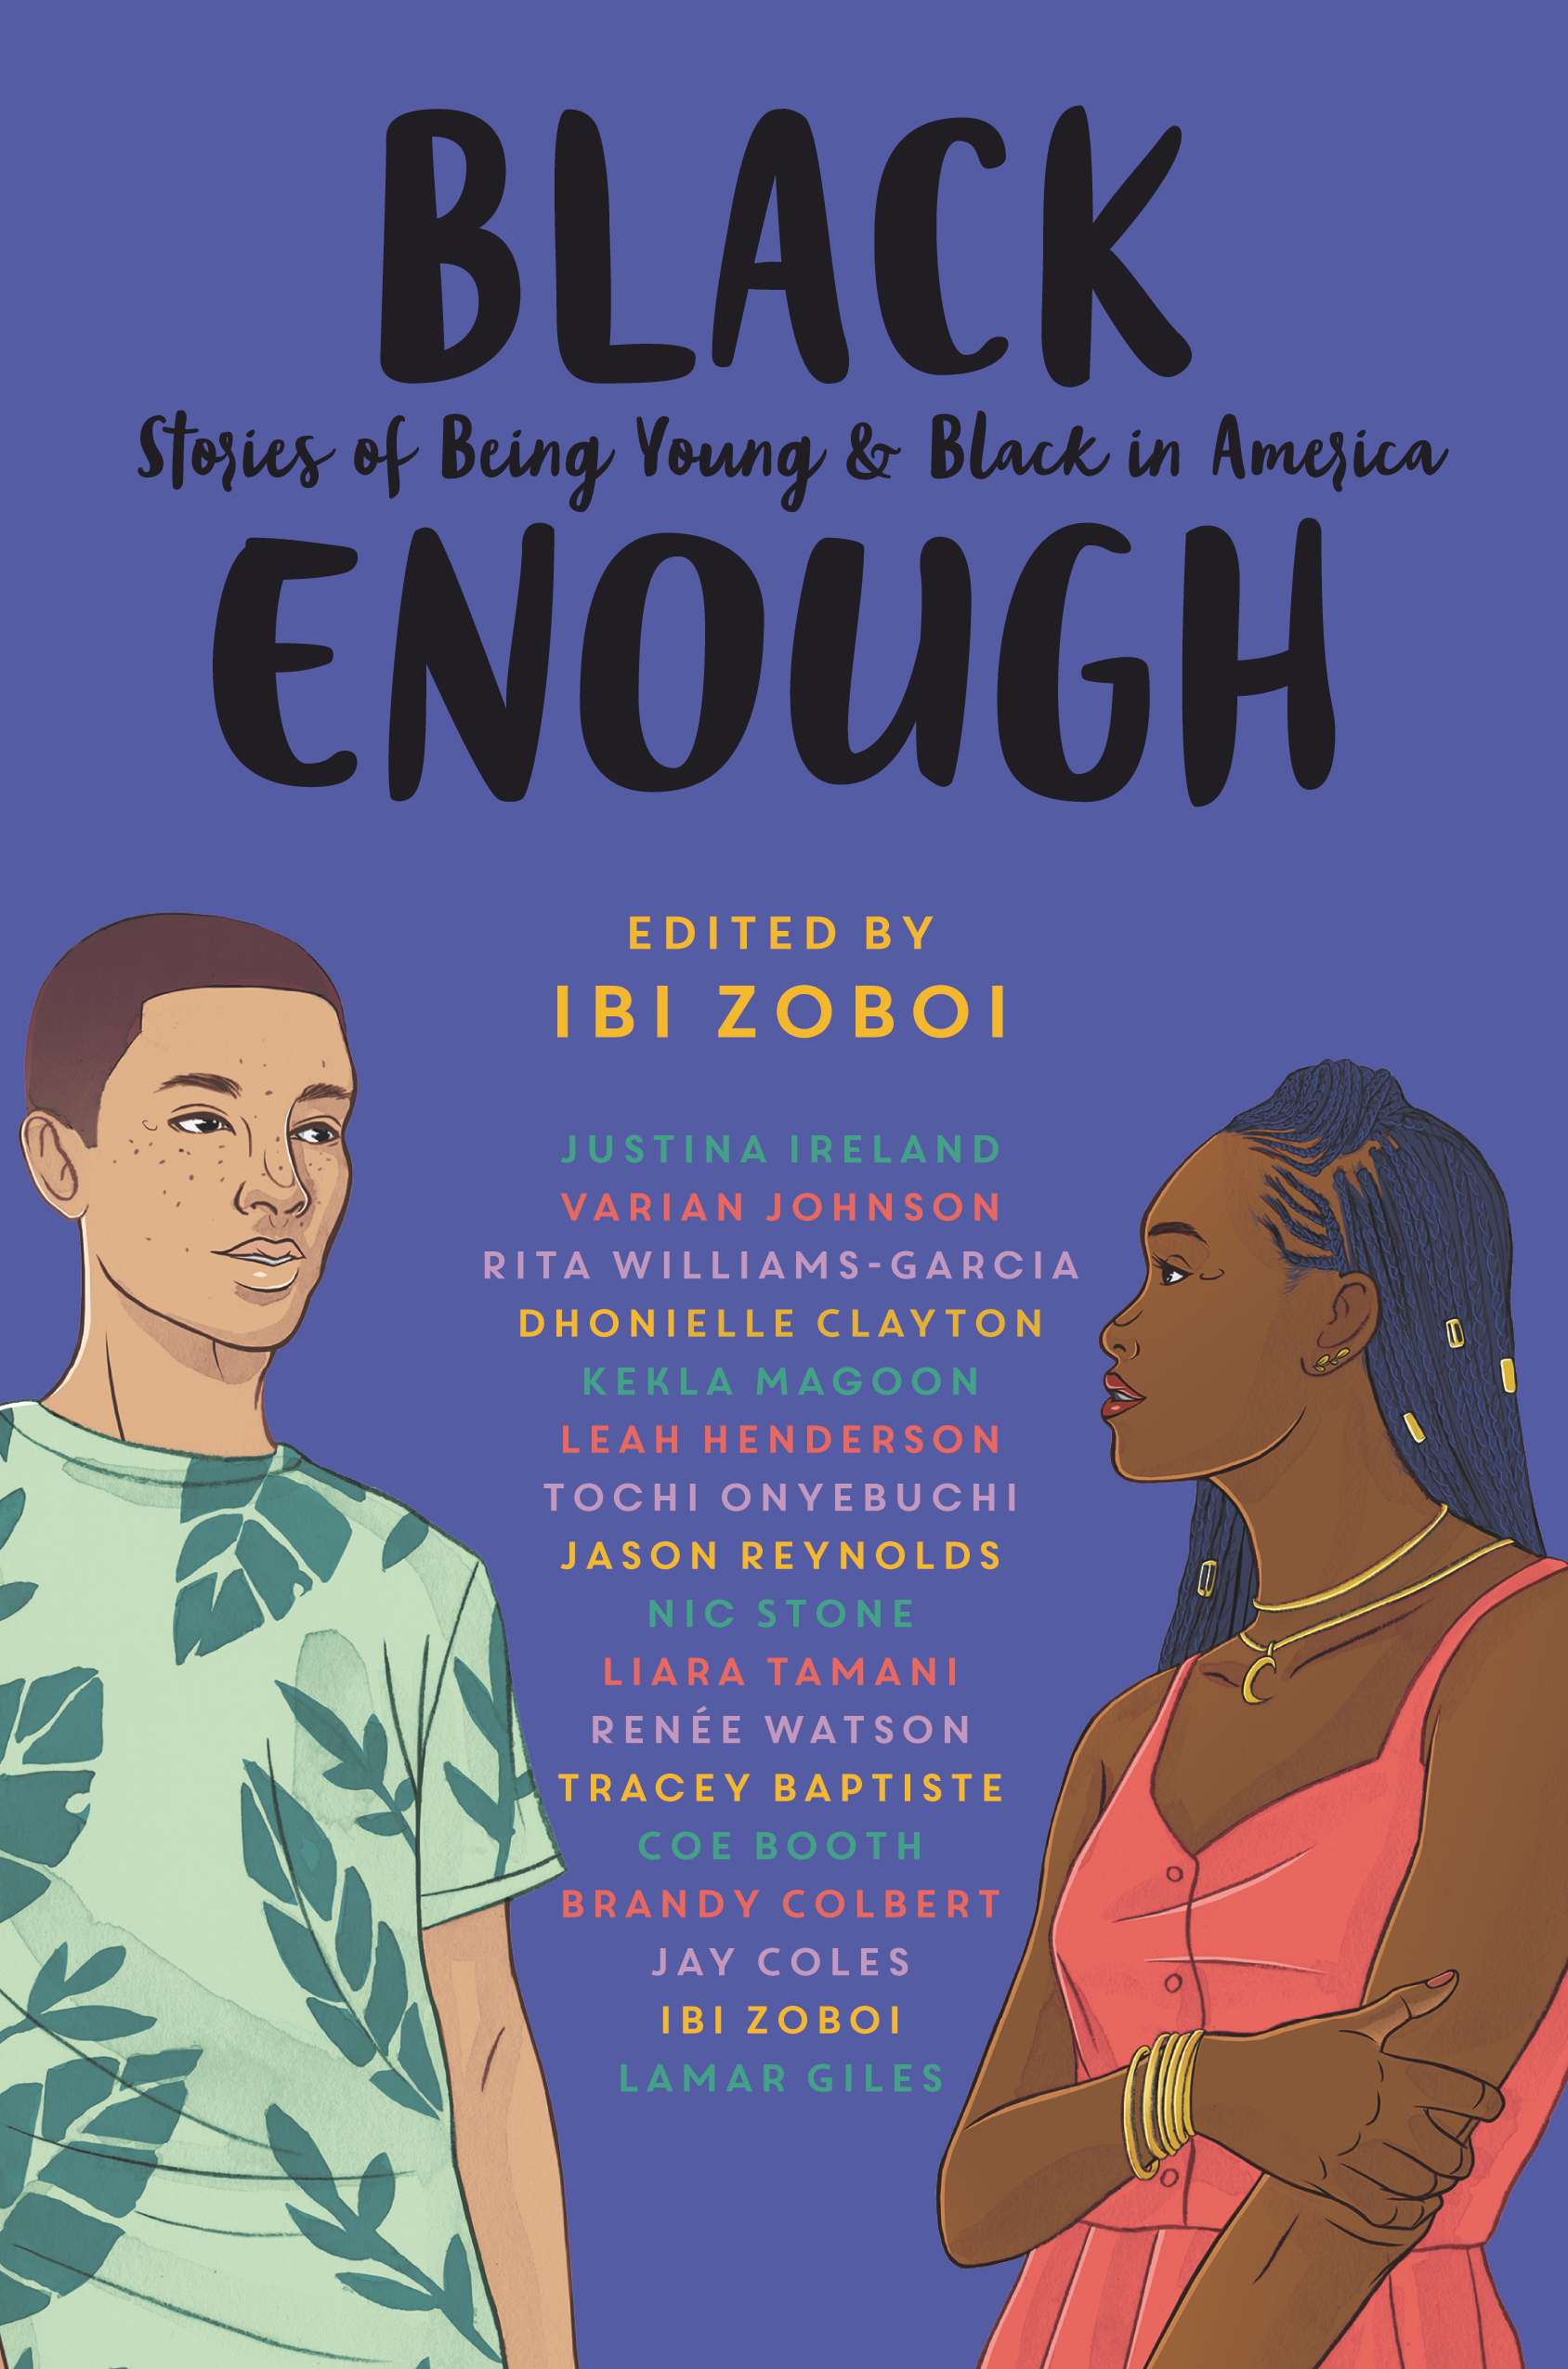 How To Be Black Book >> Black Enough Edited By Ibi Zoboi Review The Washington Post